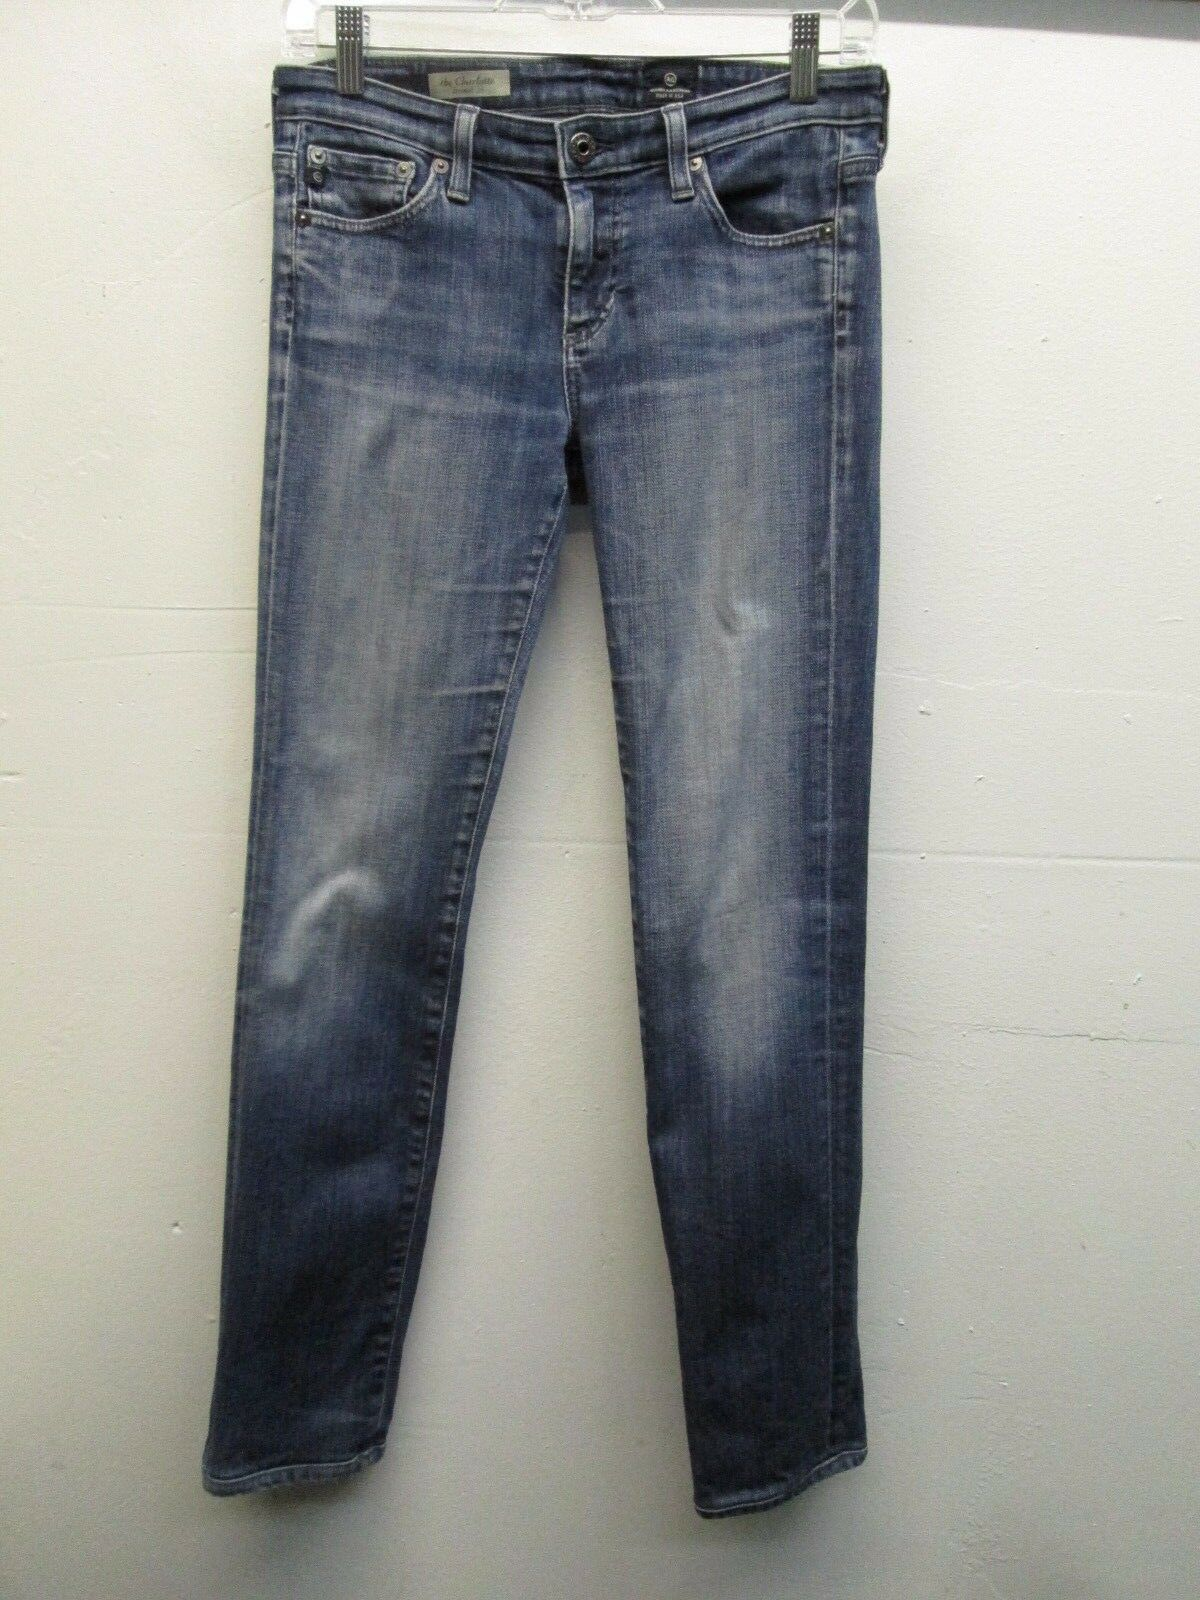 Adriano goldschmied the Charlotte straight leg bluee jeans size 28R (30 29) EUC